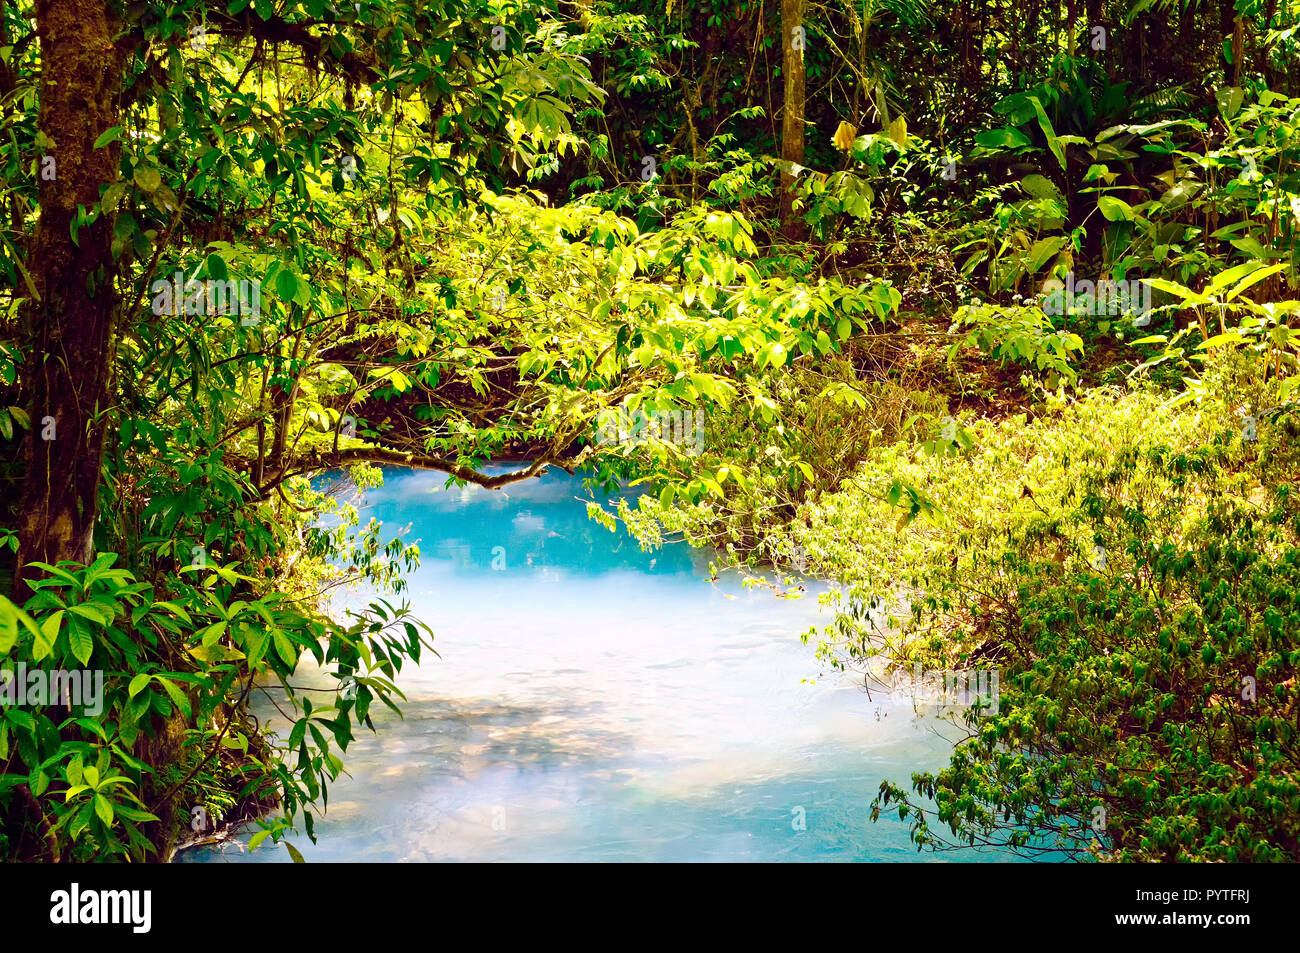 Celeste River in Costa Rica (Tenorio park) has a strong sky blue colour. - Stock Image